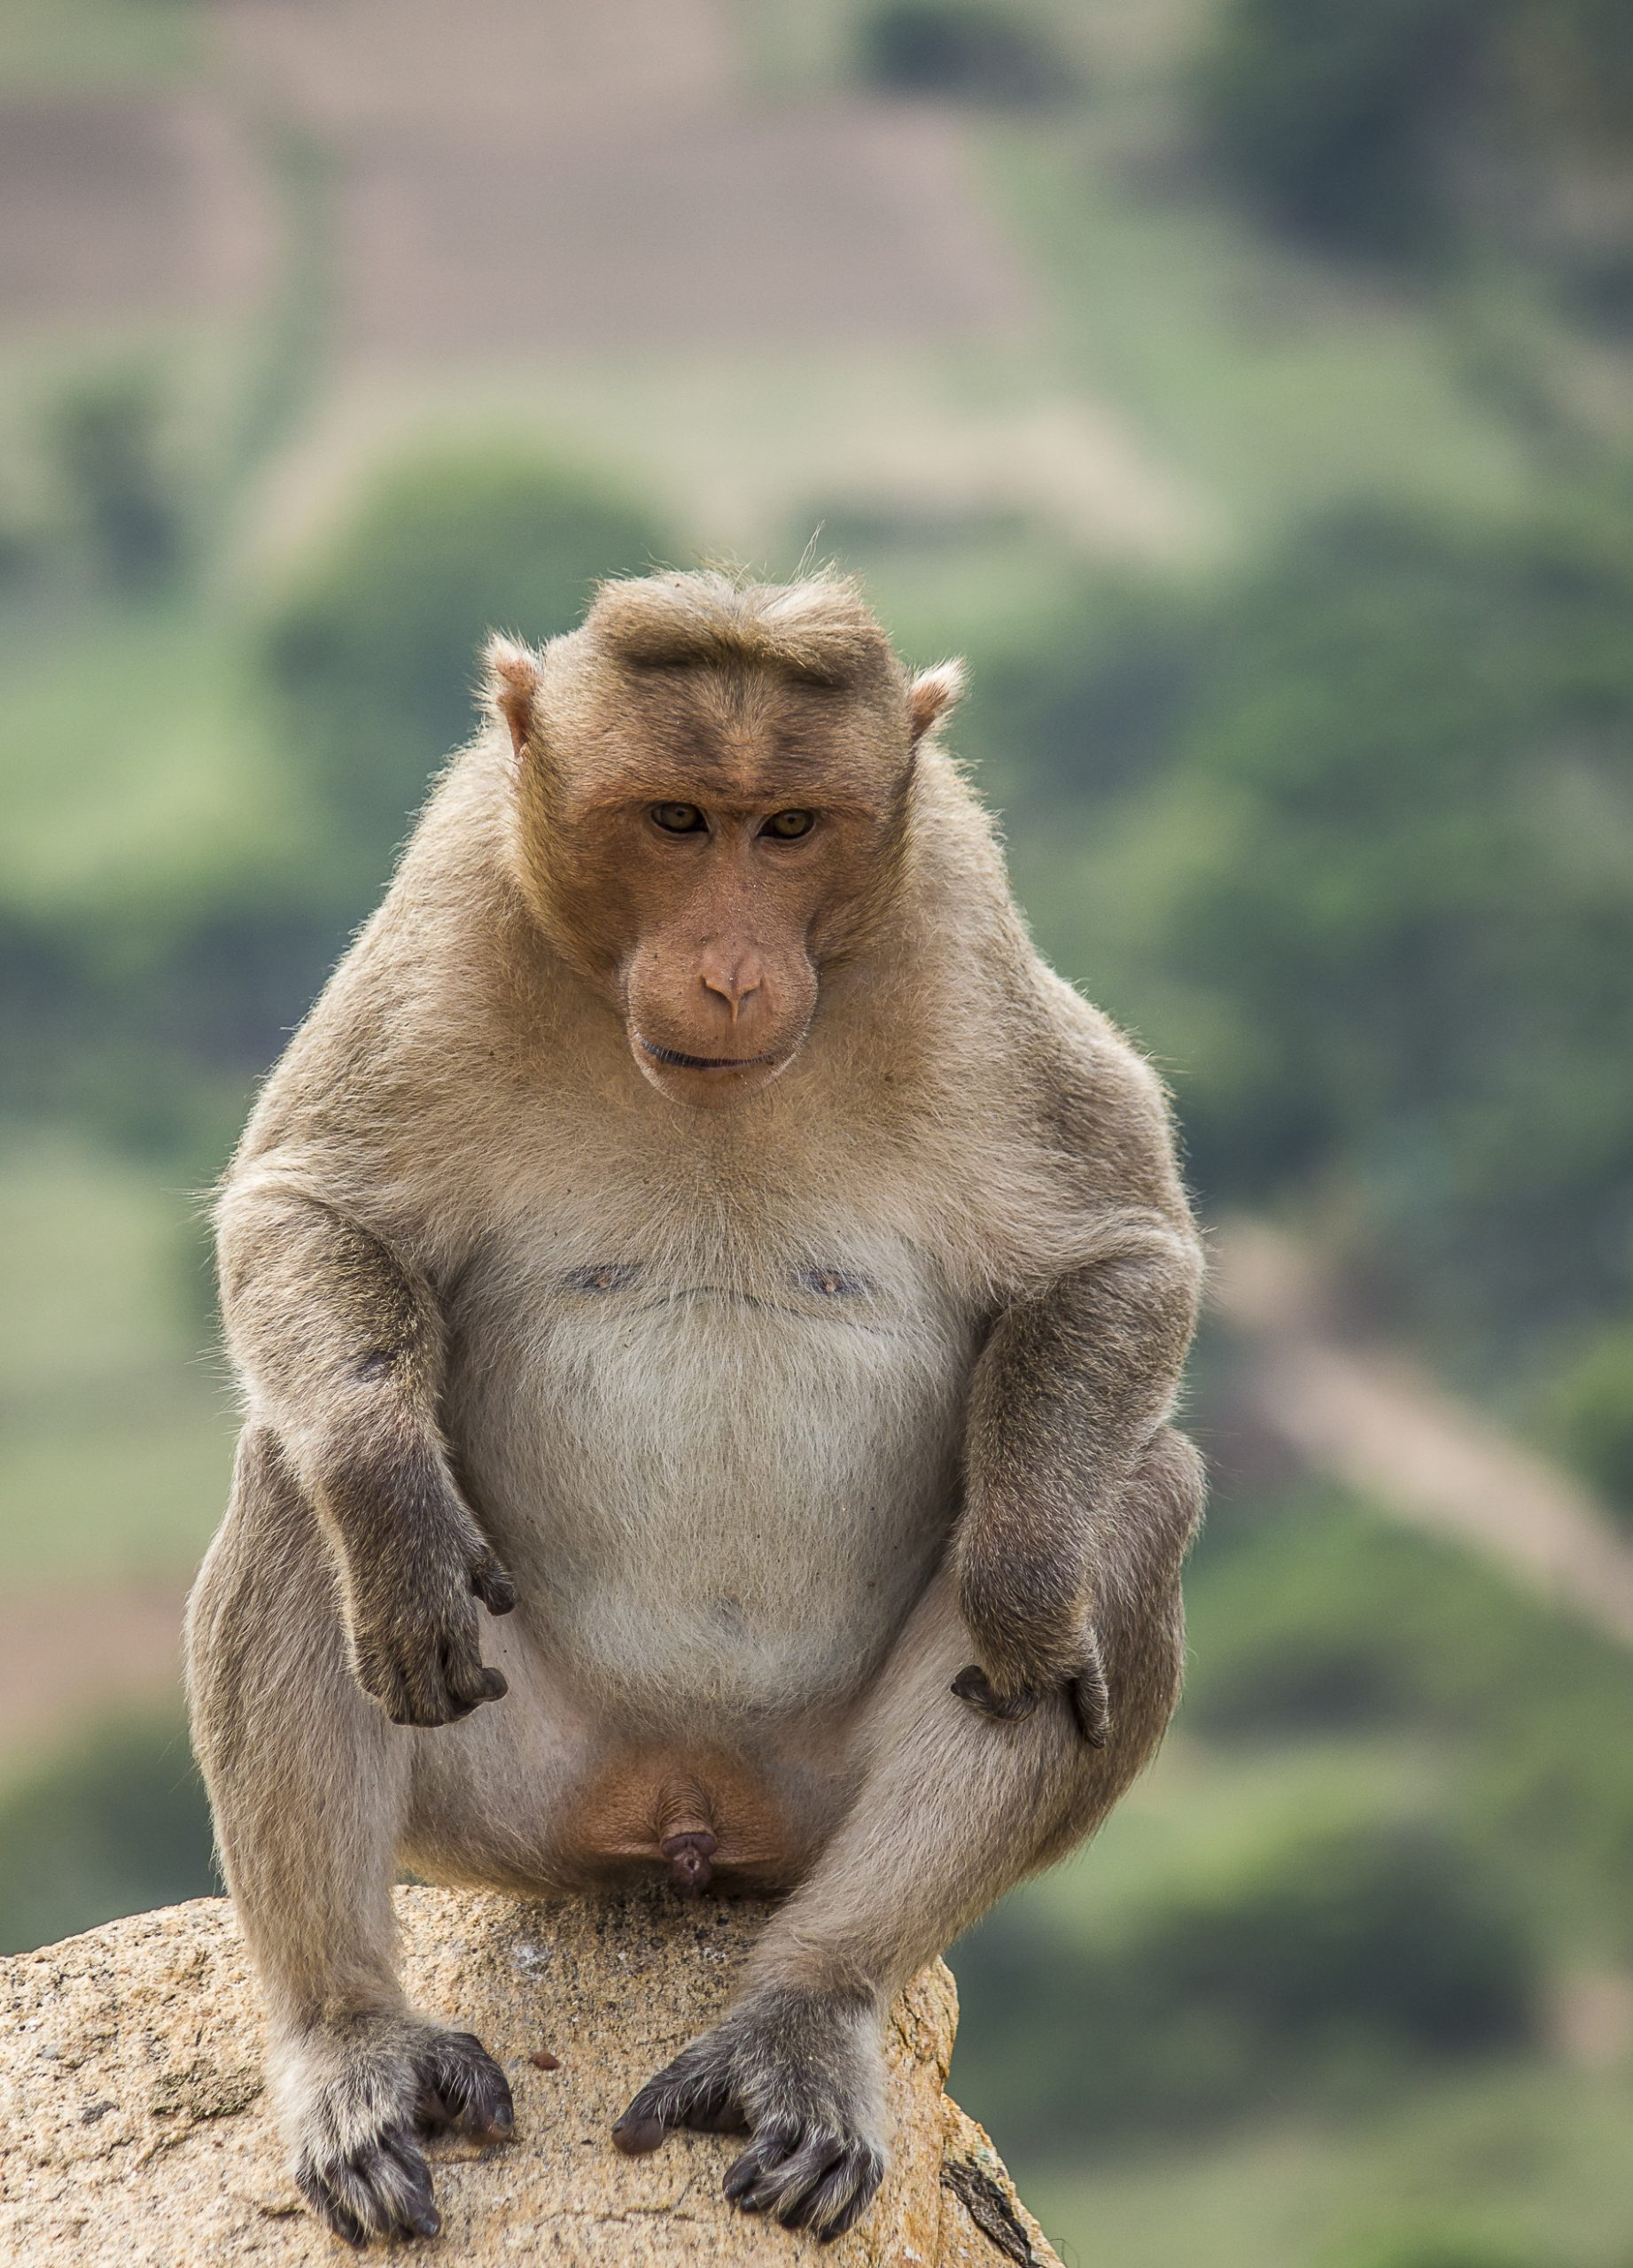 Portrait of a Bonnet macaque Monkey